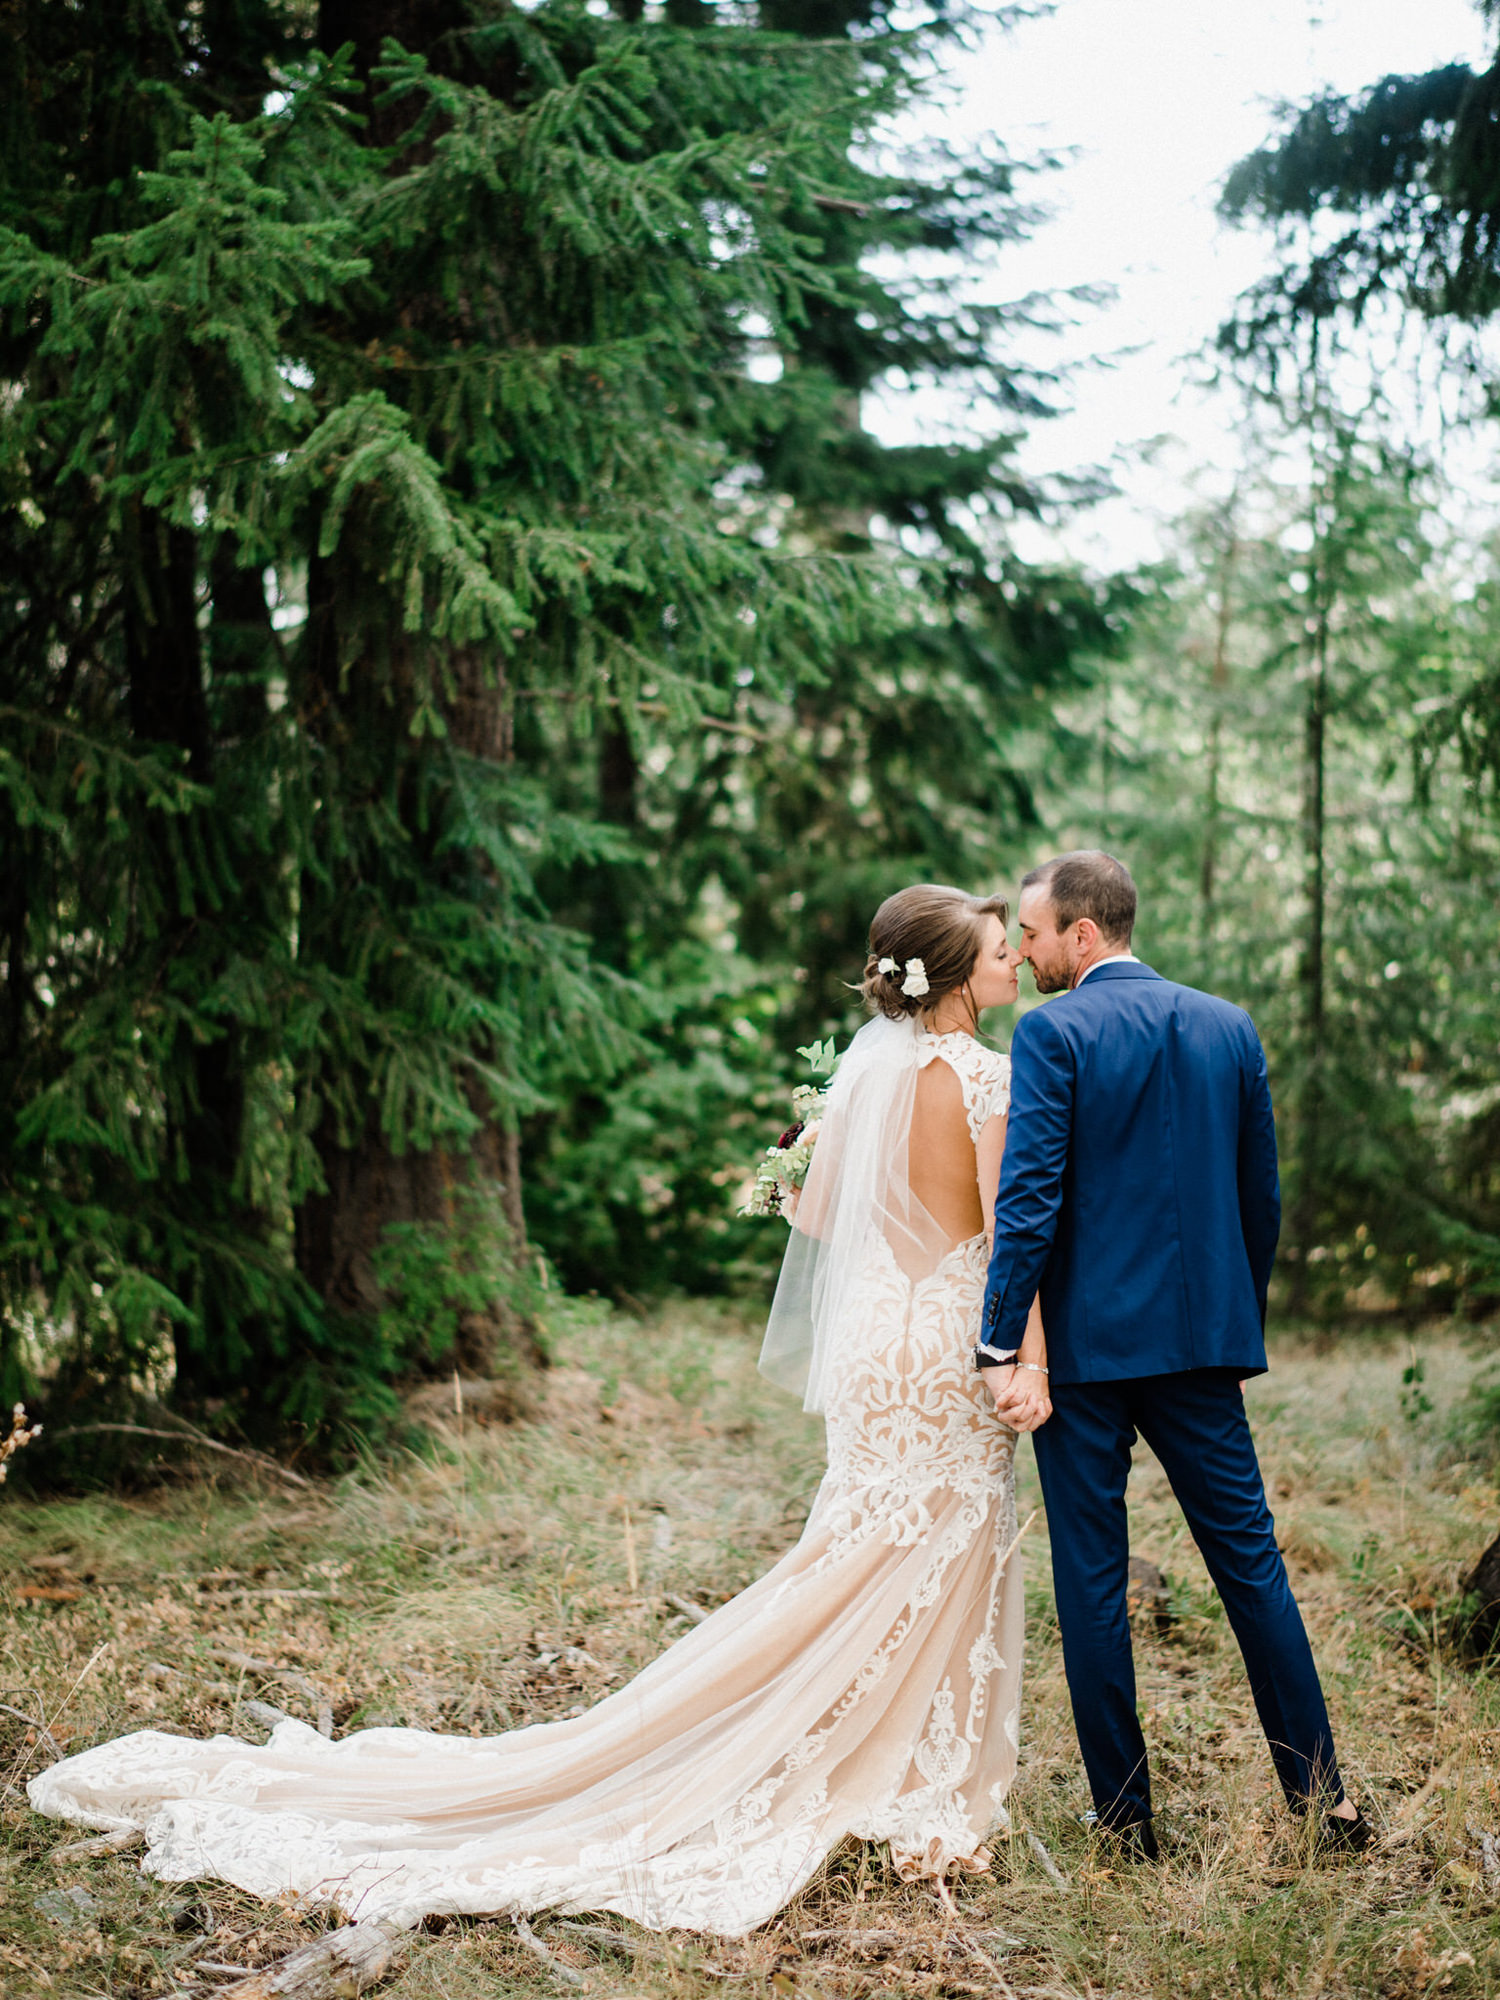 286-bright-coral-wedding-with-sinclair-and-moore-at-suncadia-resort.jpg